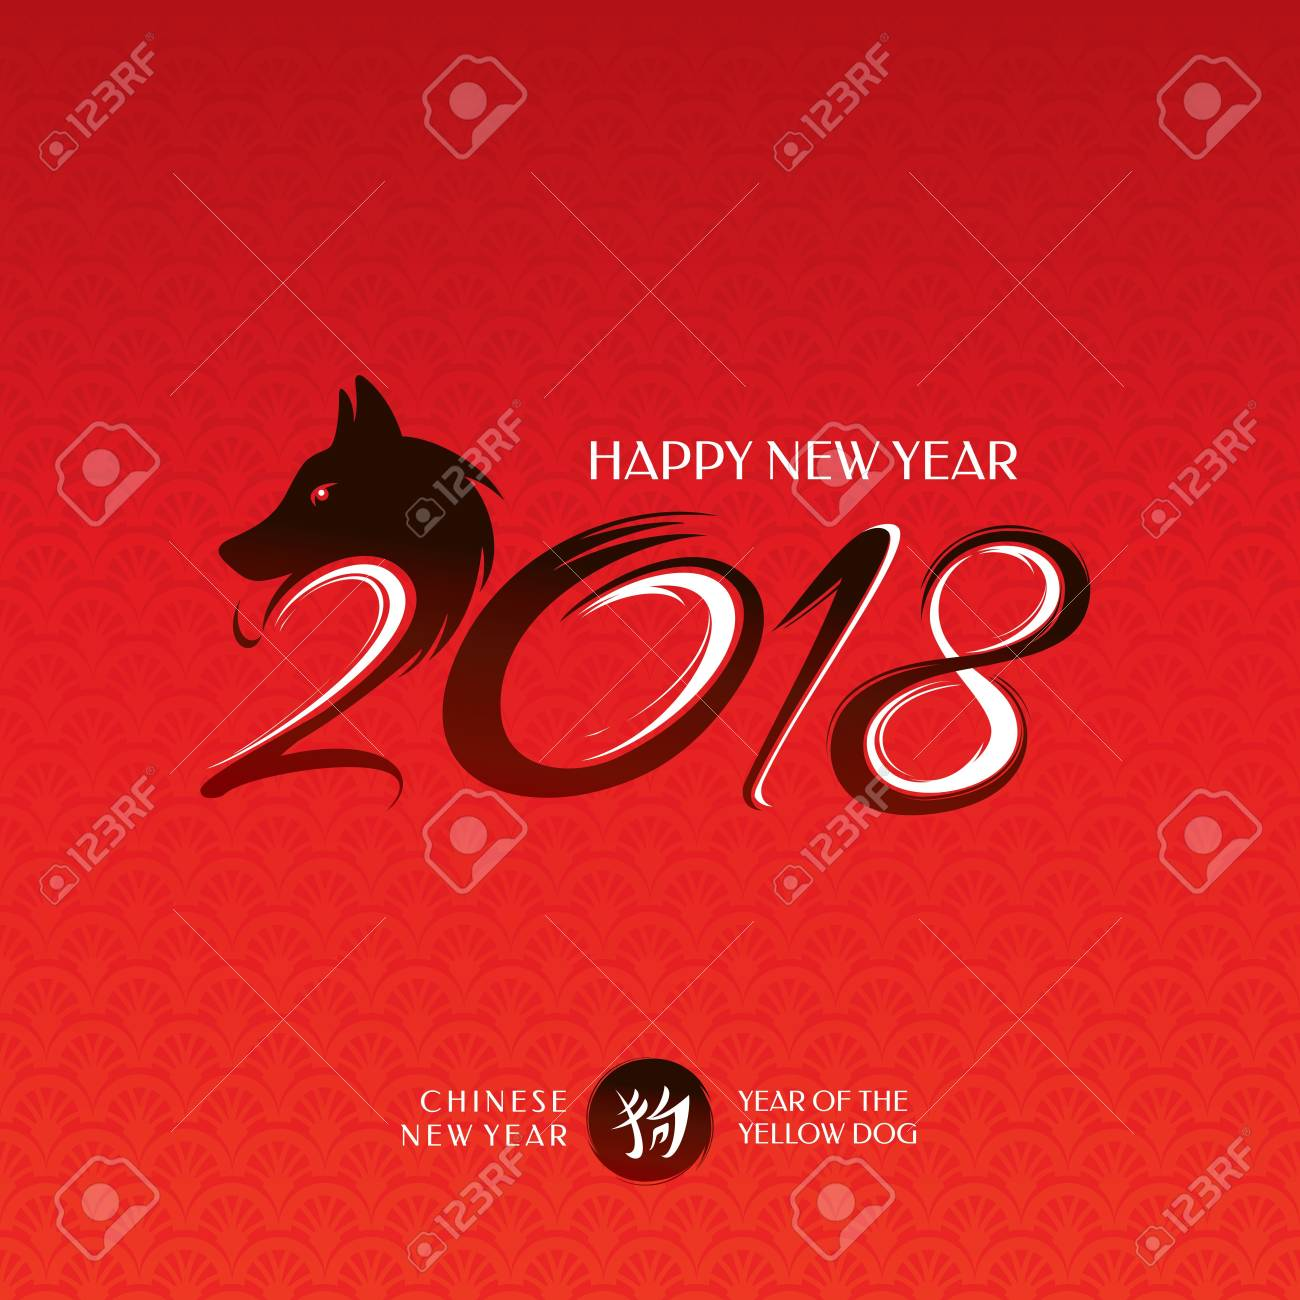 chinese new year greeting card 2018 year of the yellow dog vector illustration